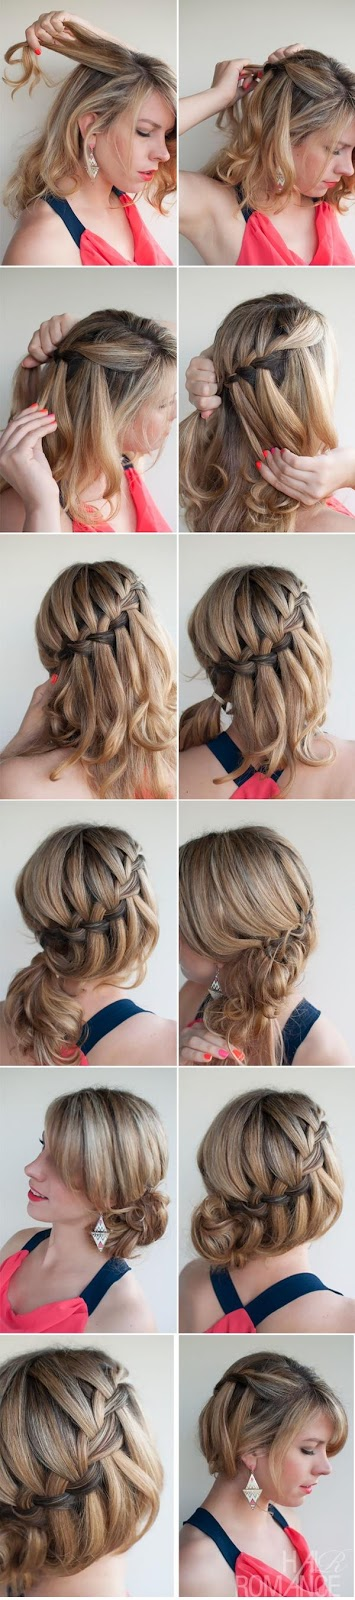 DIY waterfall braided bun hairstyle over